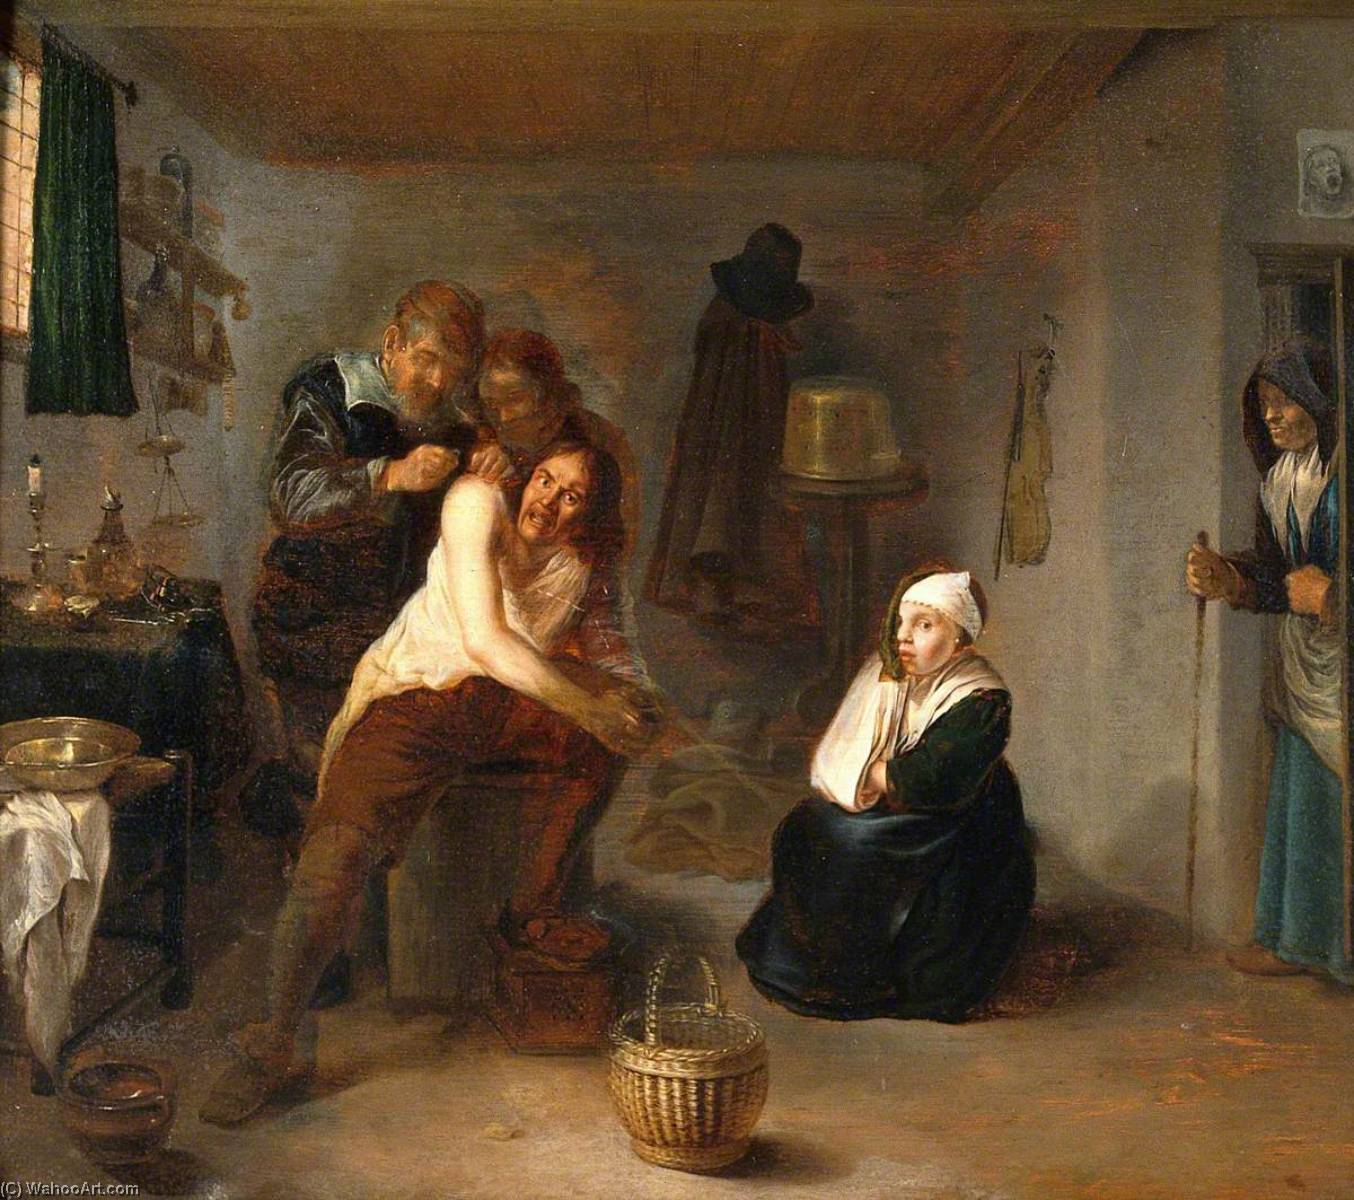 Interior with a Surgeon Operating on a Man`s Back by Gerrit Lundens (1622-1686) | Oil Painting | WahooArt.com